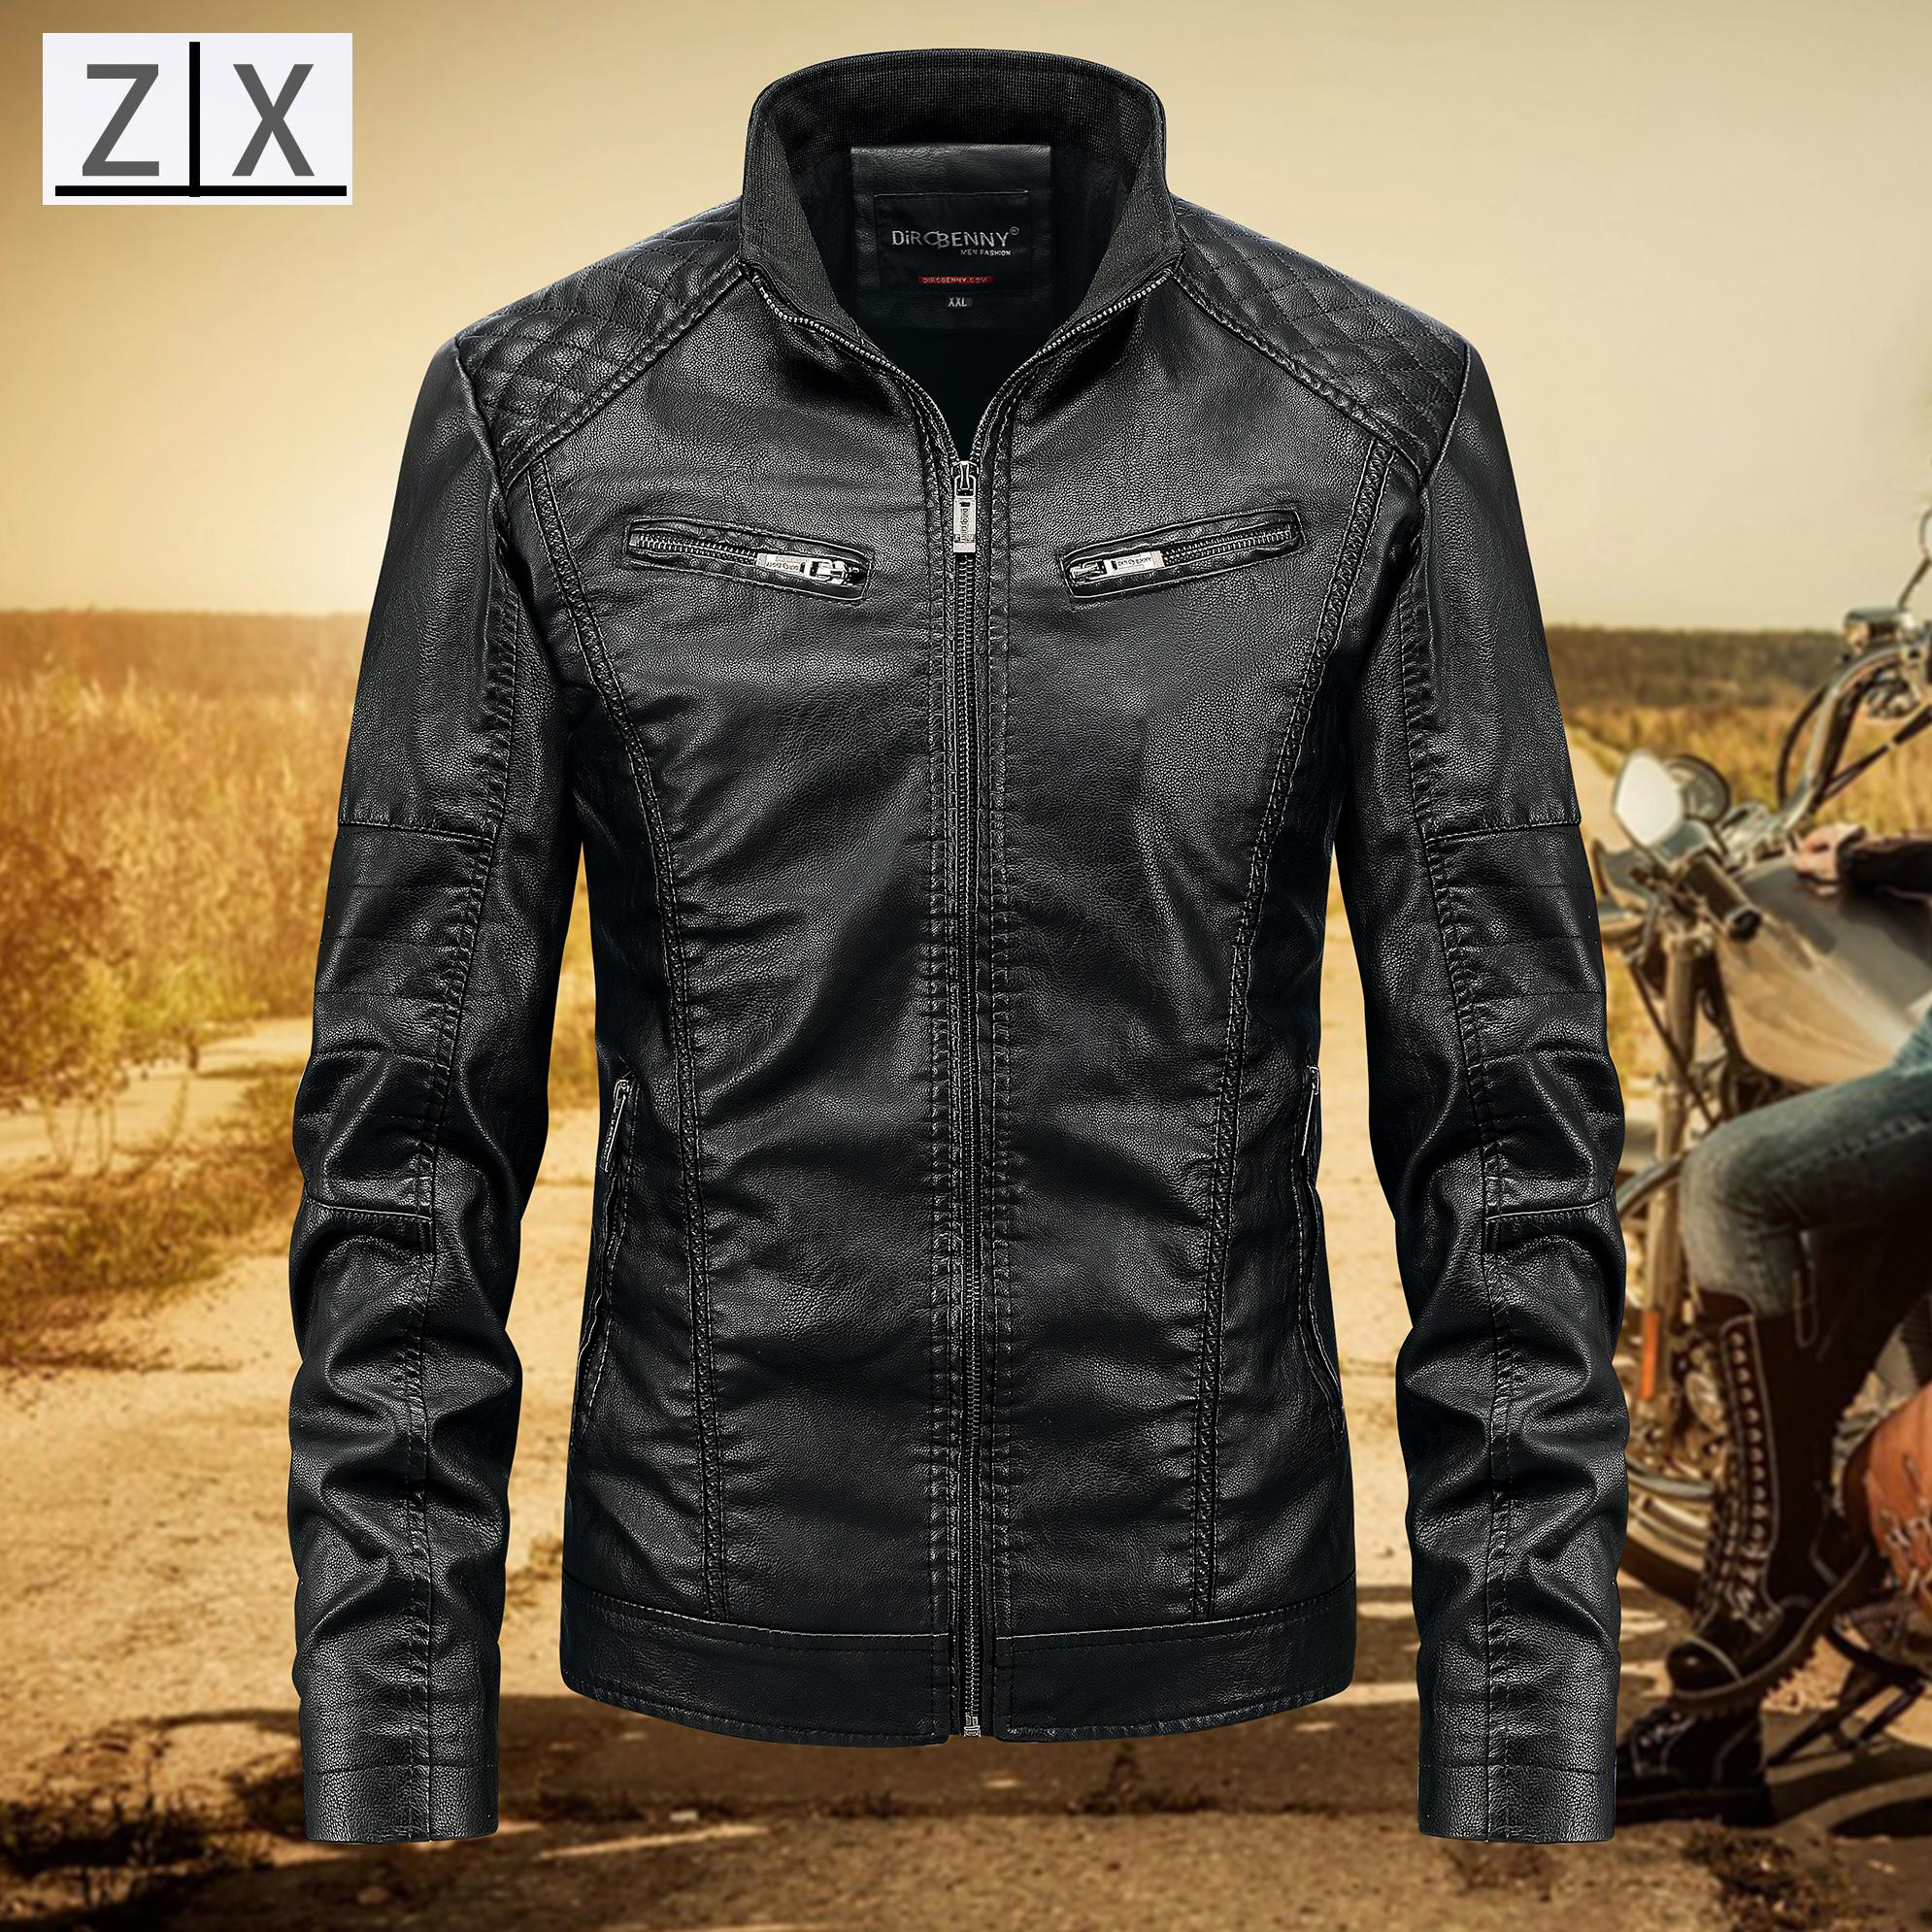 d2368b0dd USA MOTORCYCLE LEATHER JACKET FOR MAN Dircbenny